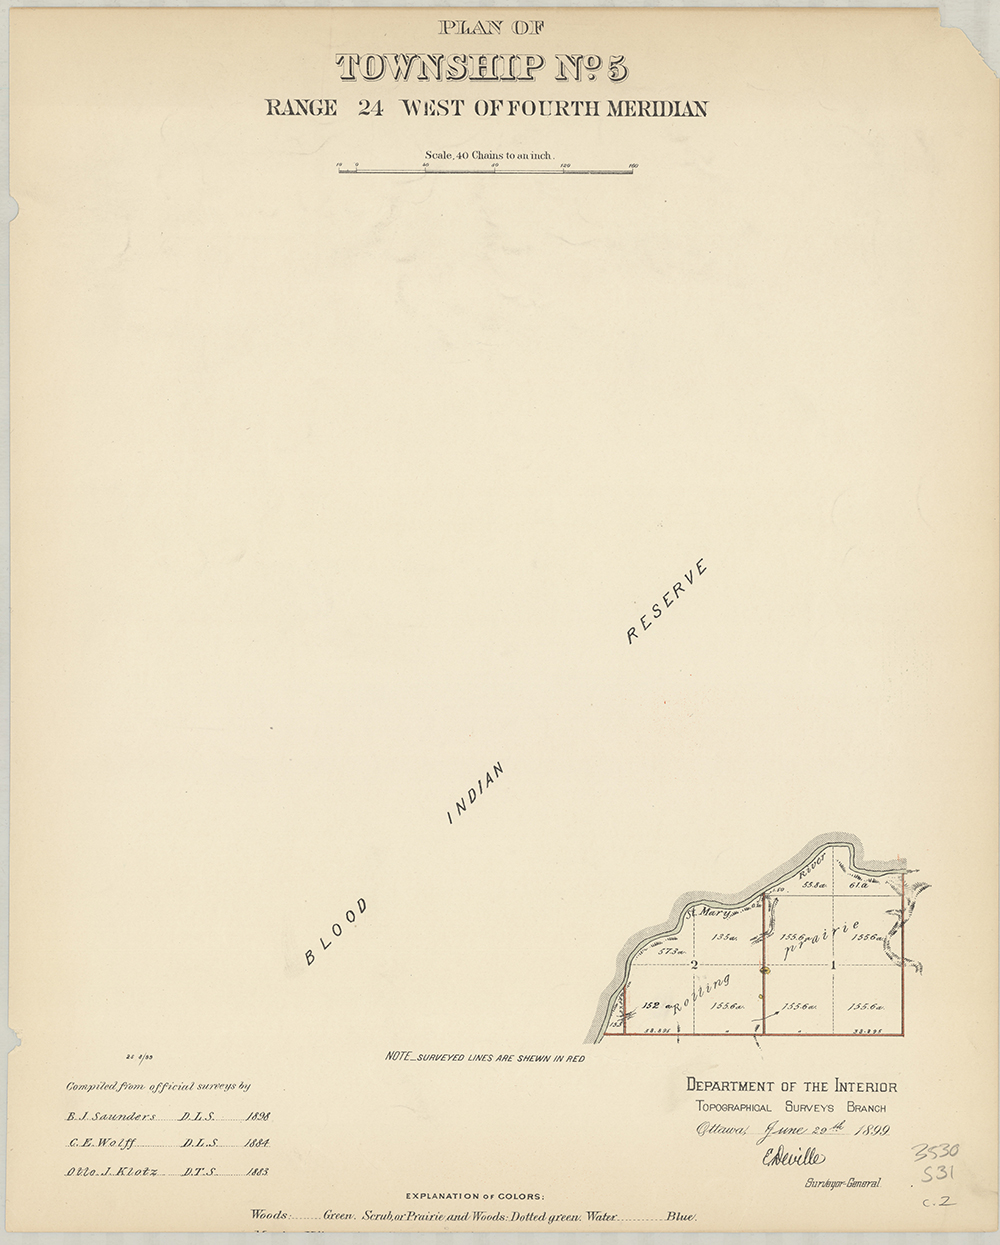 Plan of Township No.5